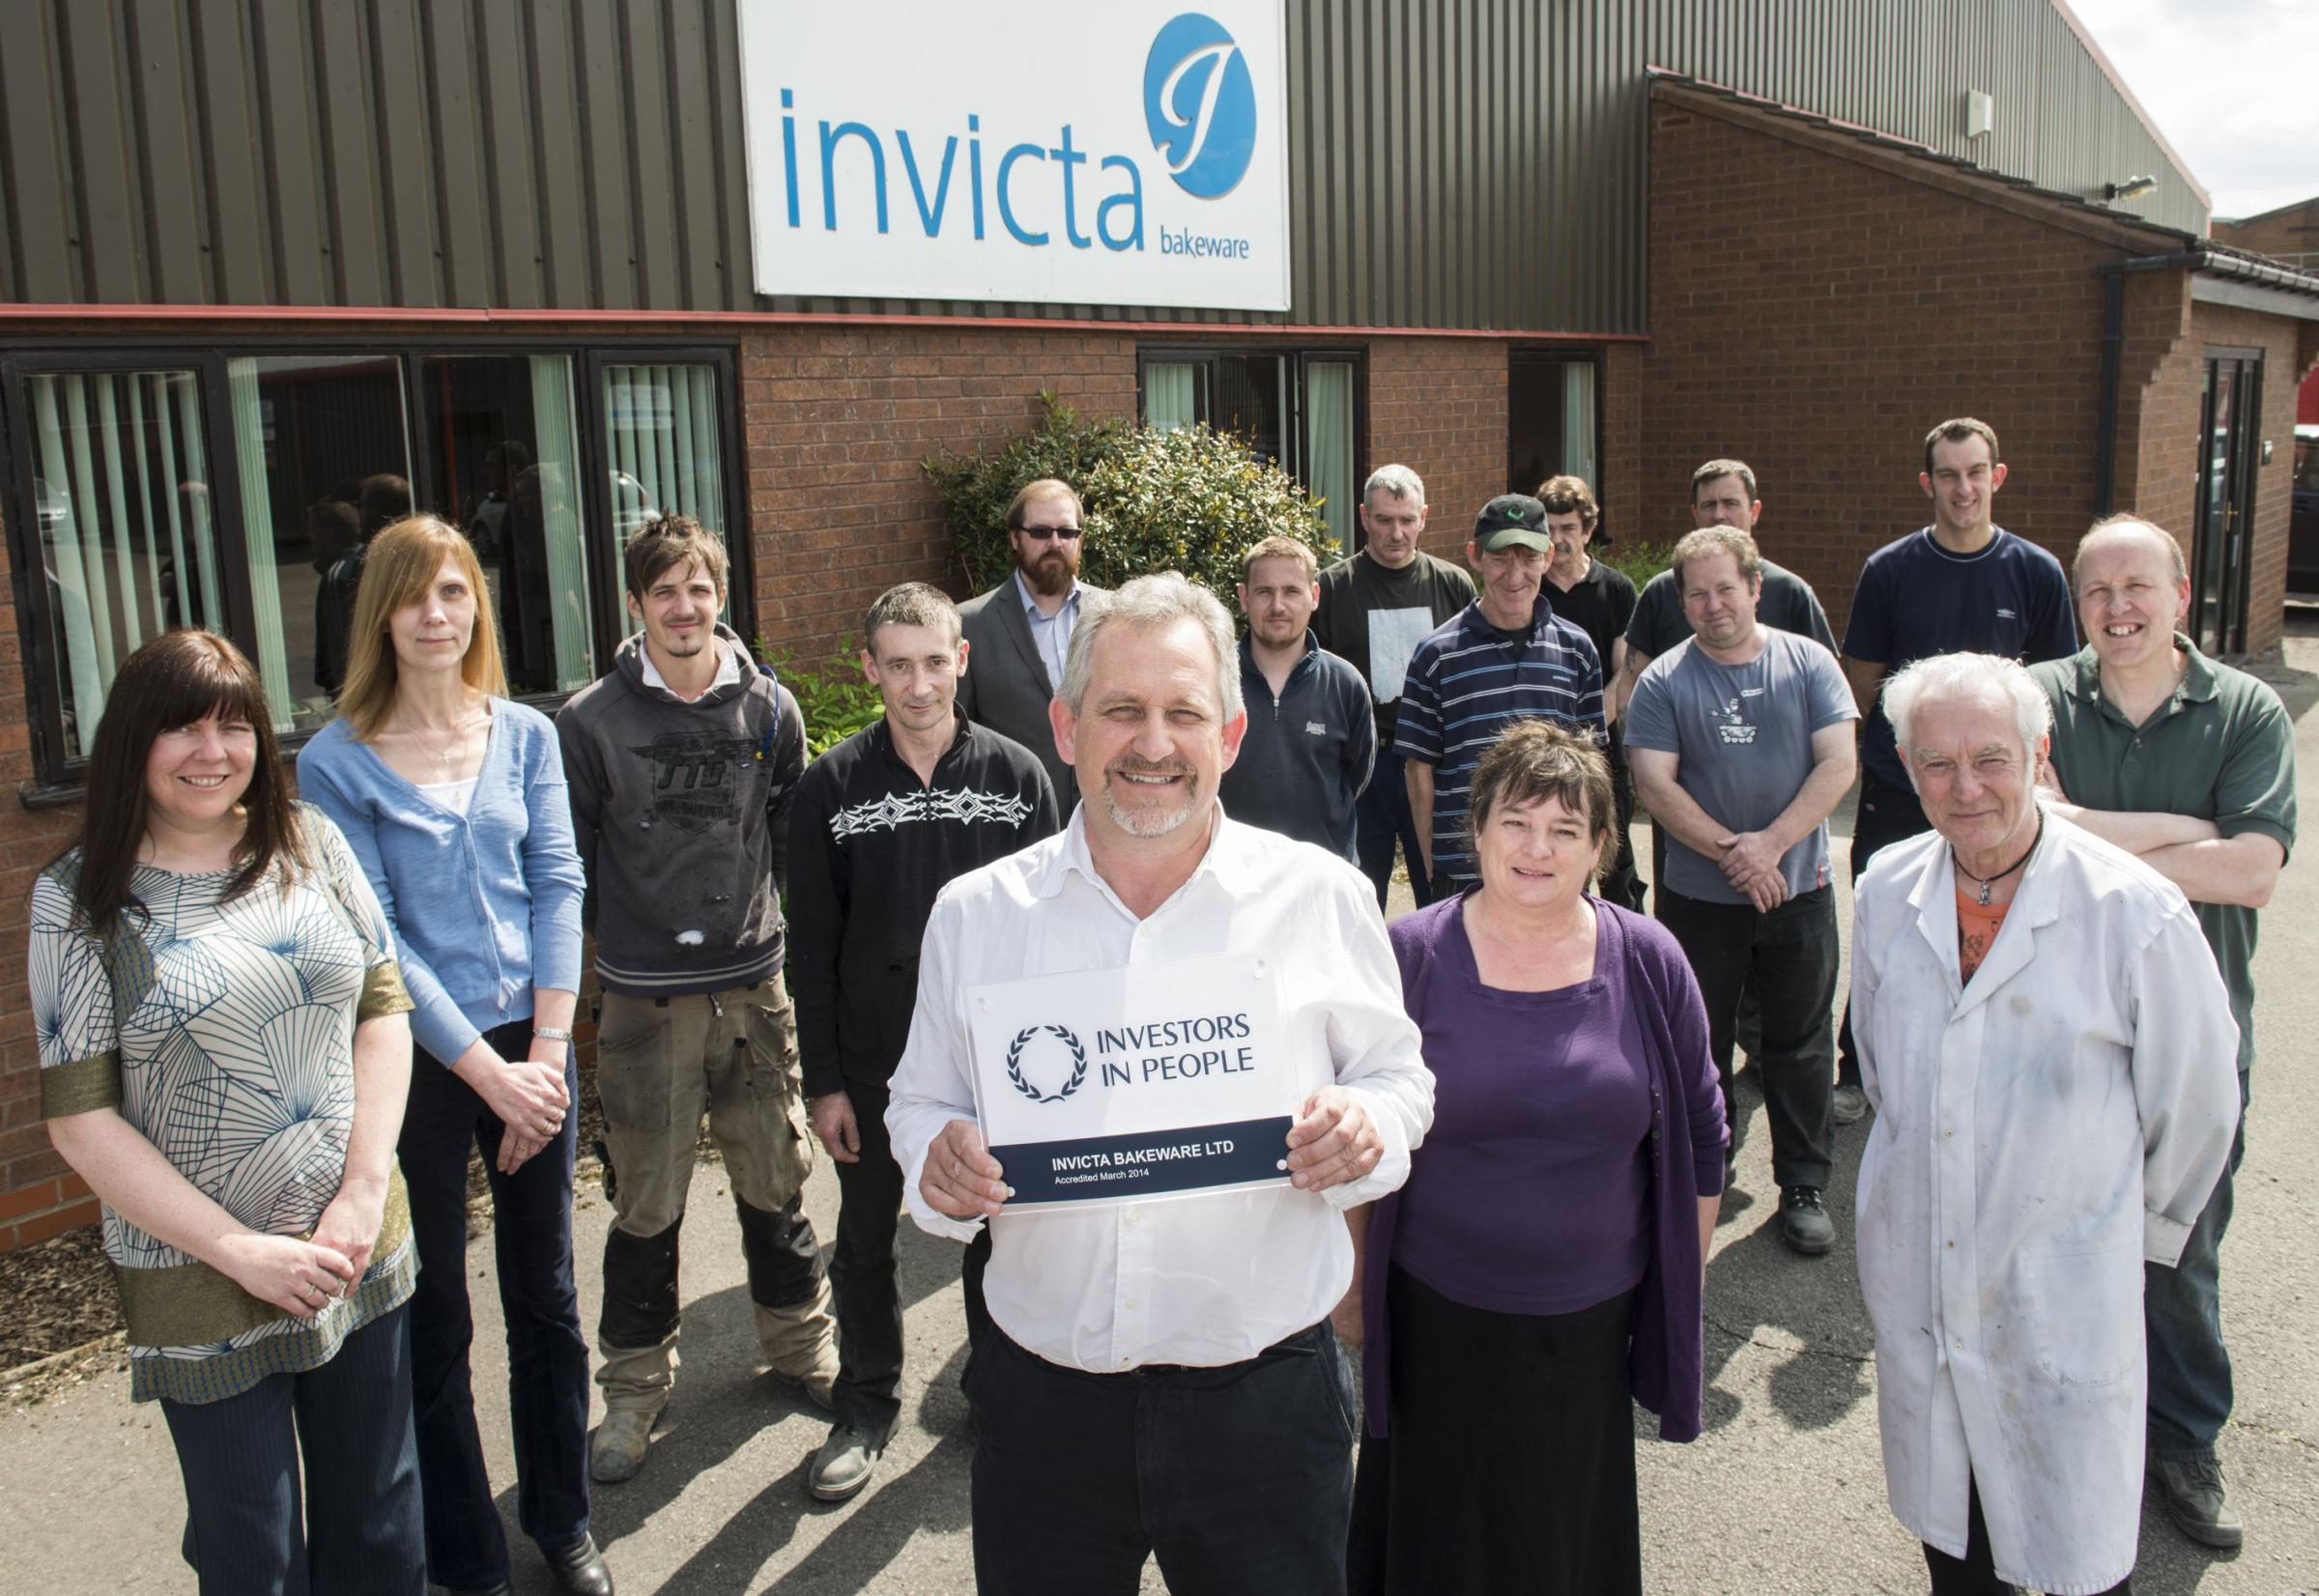 Smiles all round for staff at Invicta Bakeware: John Waddington, Managing Director, displays the prestigious Investors in People award.